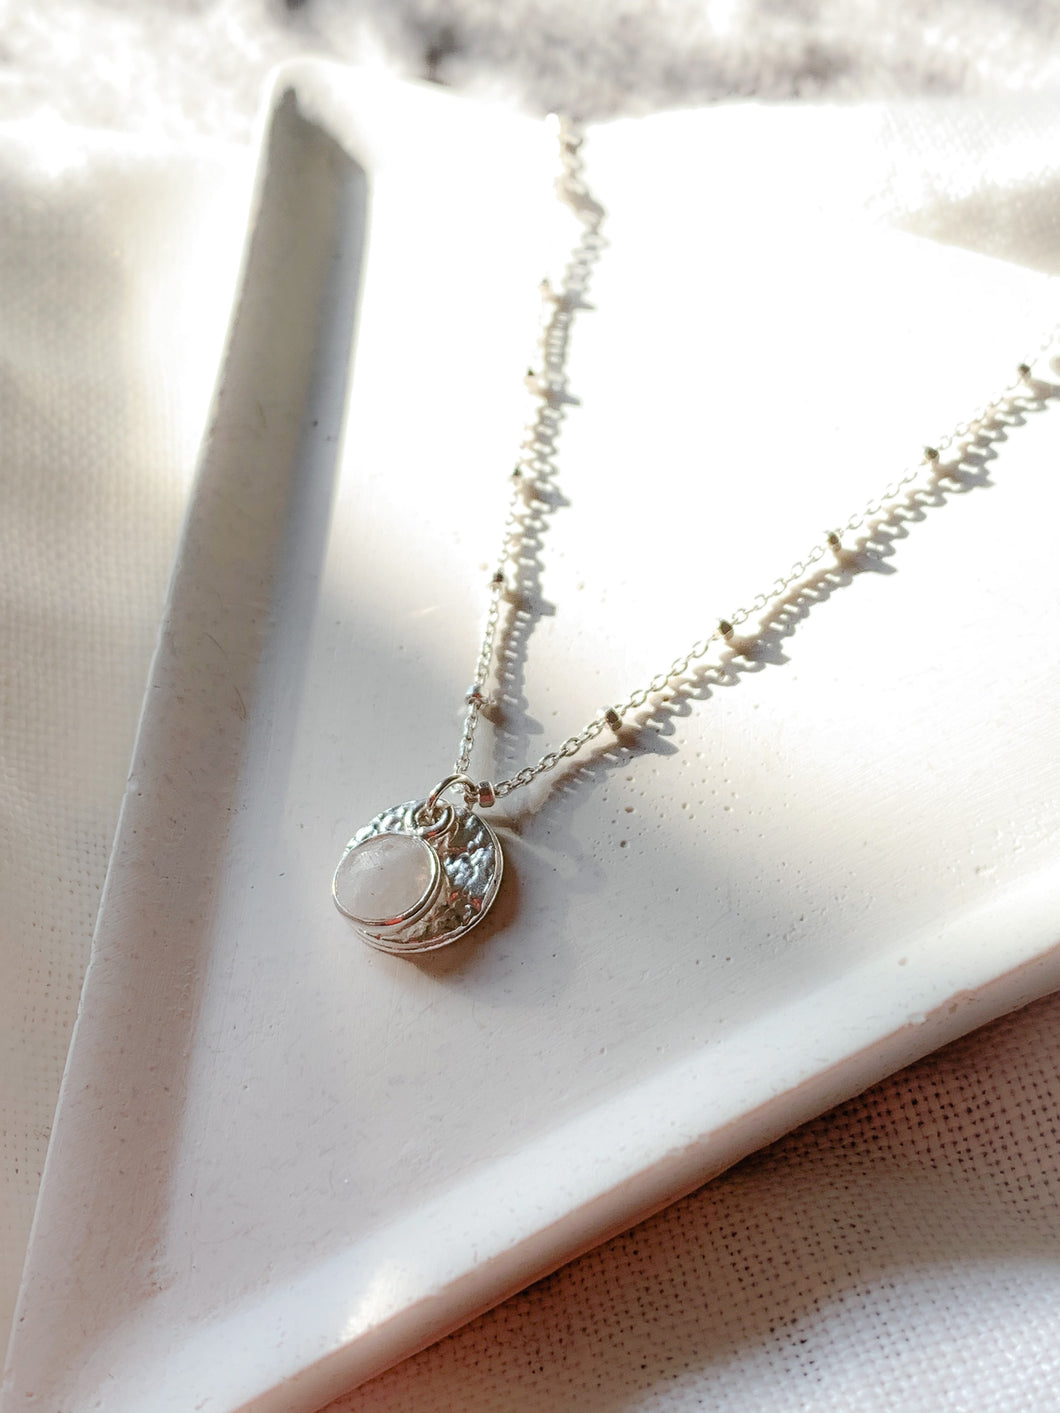 Handmade sterling silver full moon and moonstone necklace